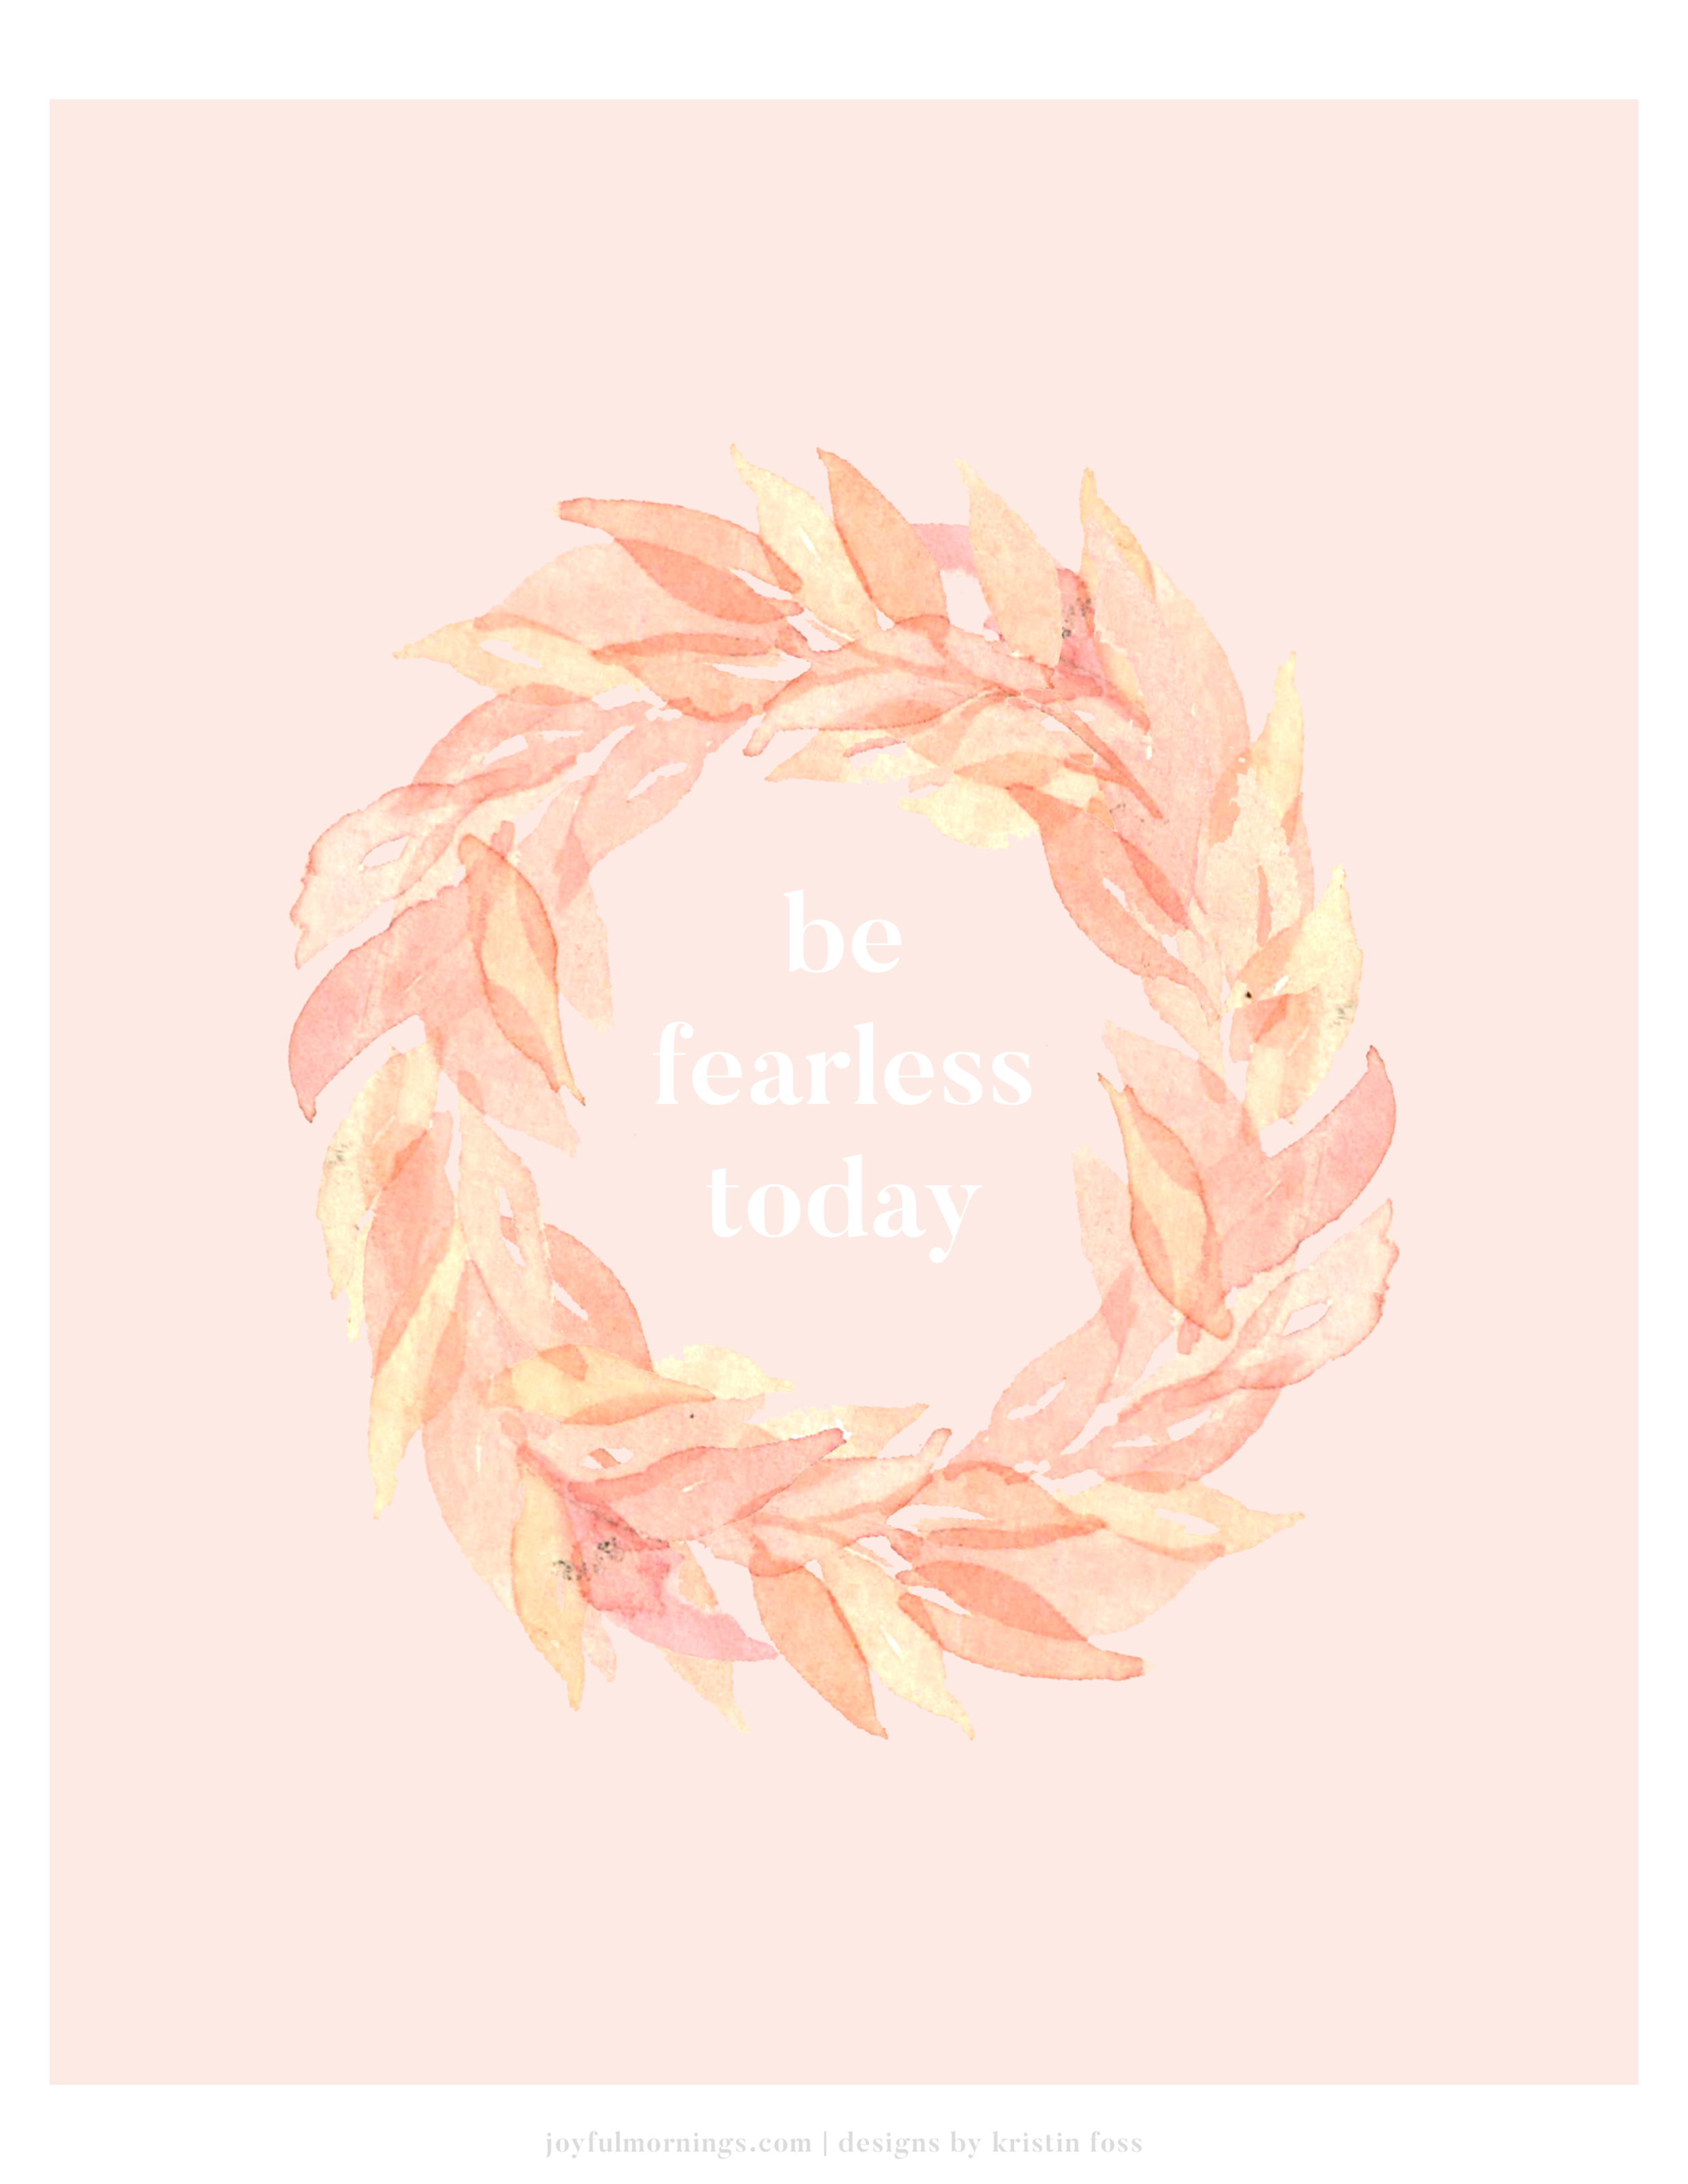 befearless.png